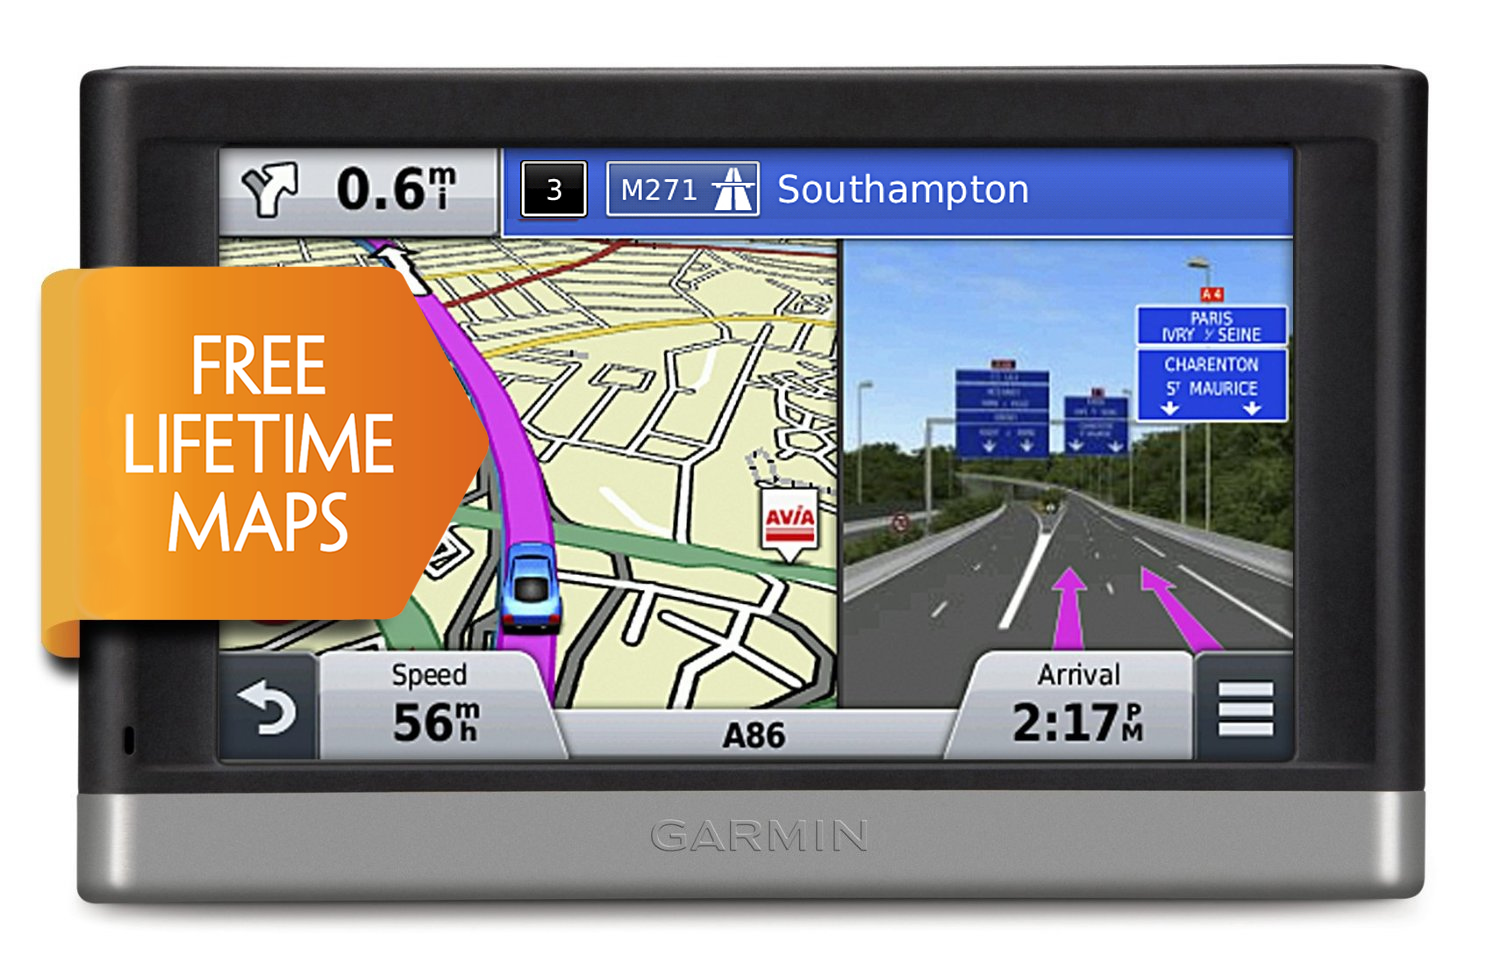 Garmin Nuvi 2497LM GPS SATNAV UK Europe FREE LIFETIME Map Updates + Bluetooth